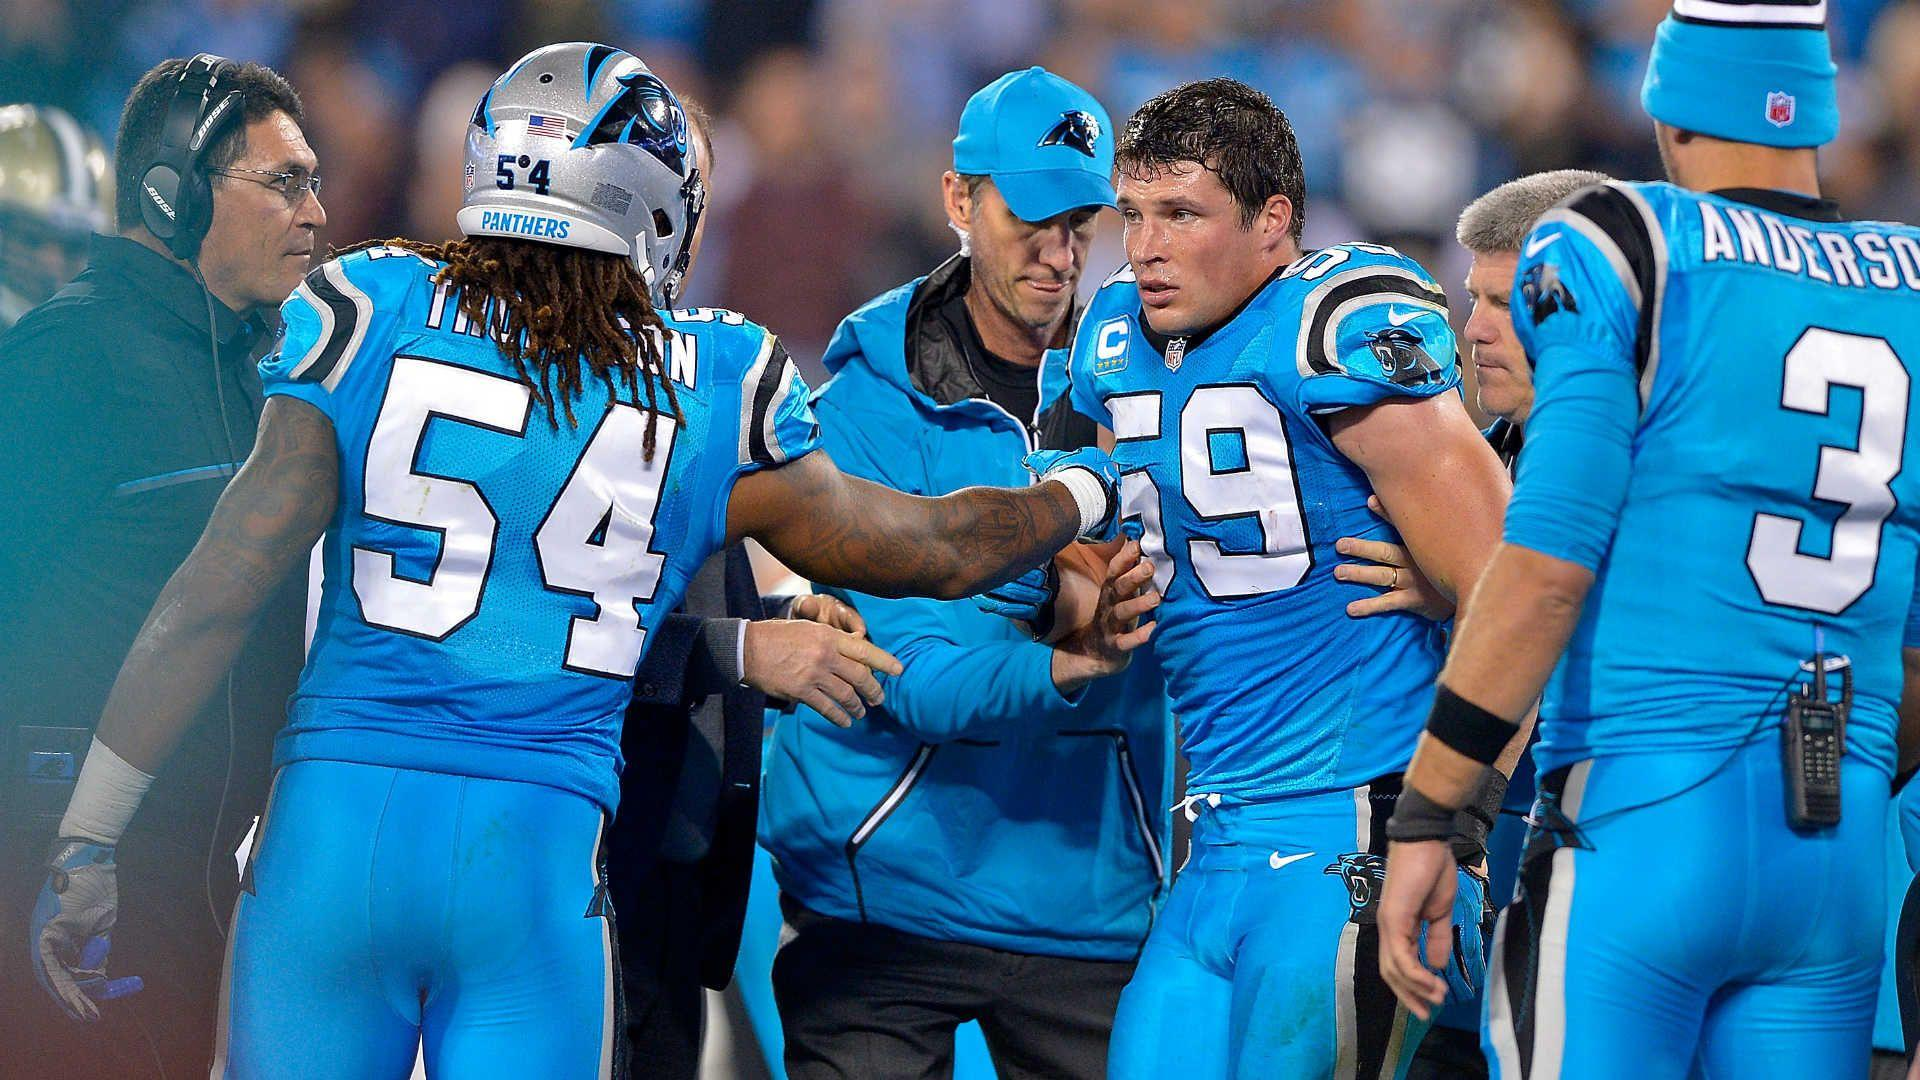 Panthers' Luke Kuechly dodged concussion vs. Eagles, report says